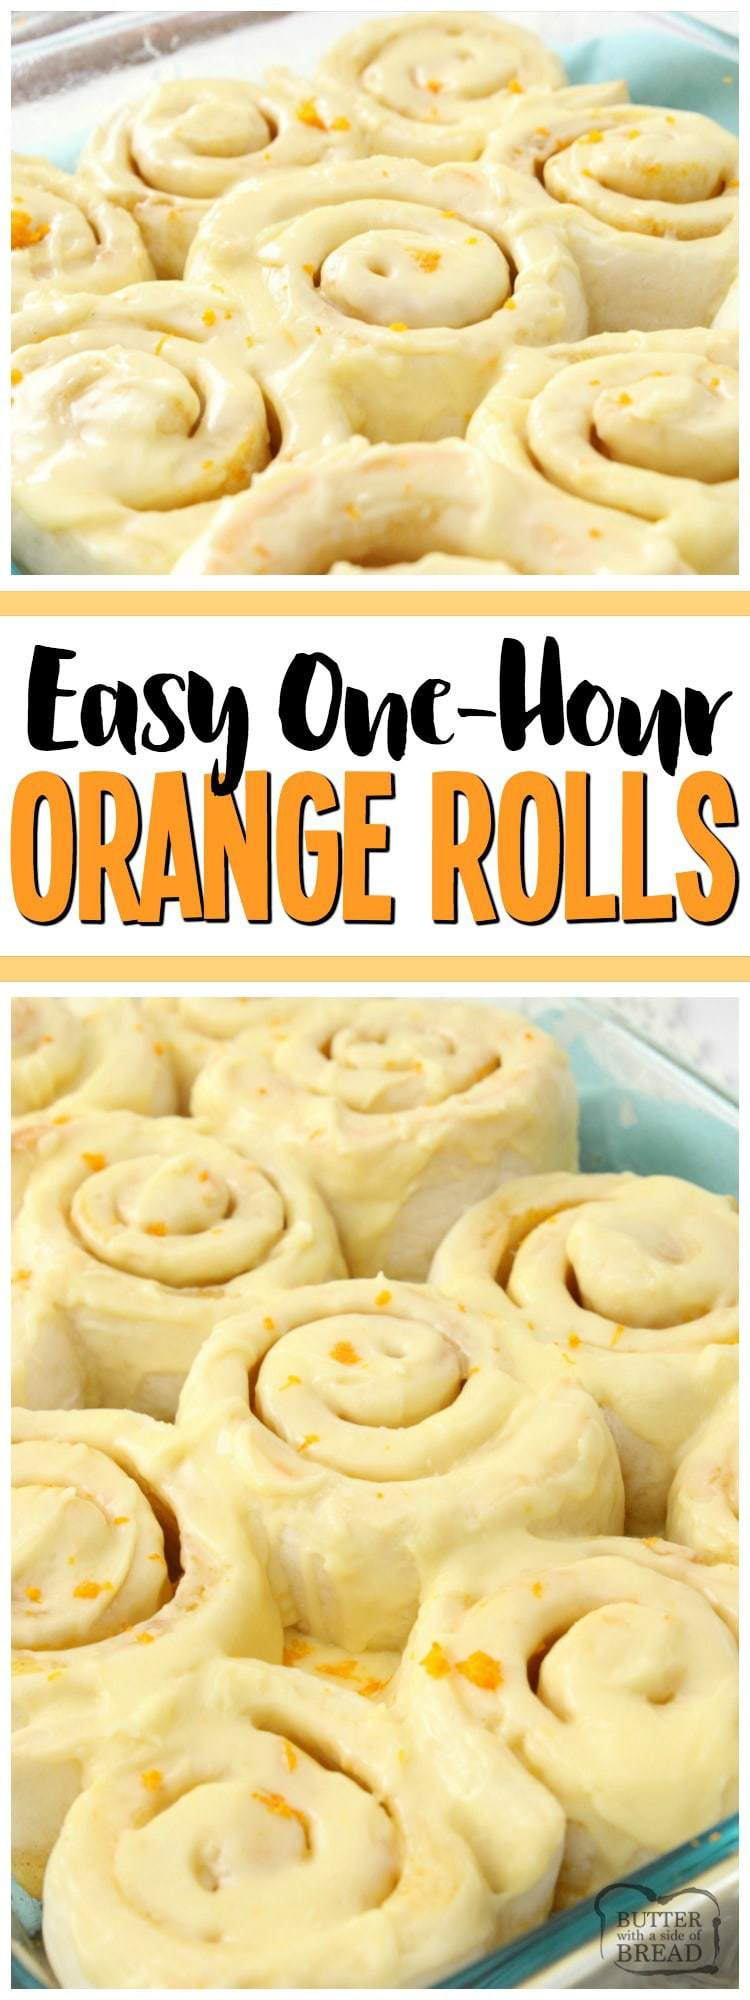 Orange Rolls made in an hour! Perfectly sweet, soft rolls with a bright citrus glaze that melts in your mouth. Plus, how to make the BEST sweet #rolls ever! Easy One Hour #OrangeRolls #recipe with #homemade #bread #dough from Butter With A Side of Bread